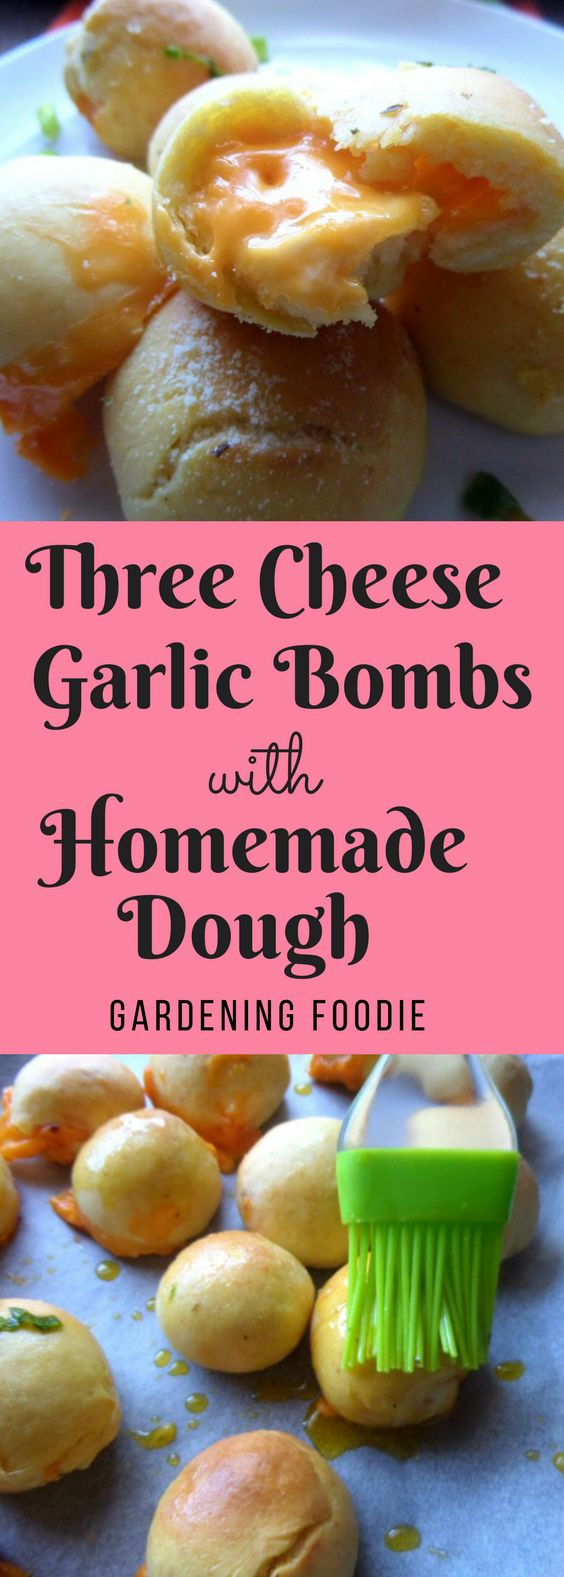 My recipe for Three Cheese Garlic Bombs with Homemade Dough will make a delicious addition to your appetizer platter. A buttermilk rich crust, filled with cream cheese, baked and then brushed with a garlic herb butter and rolled in parmesan, watch these delicious little bites disappear off the plate in record time